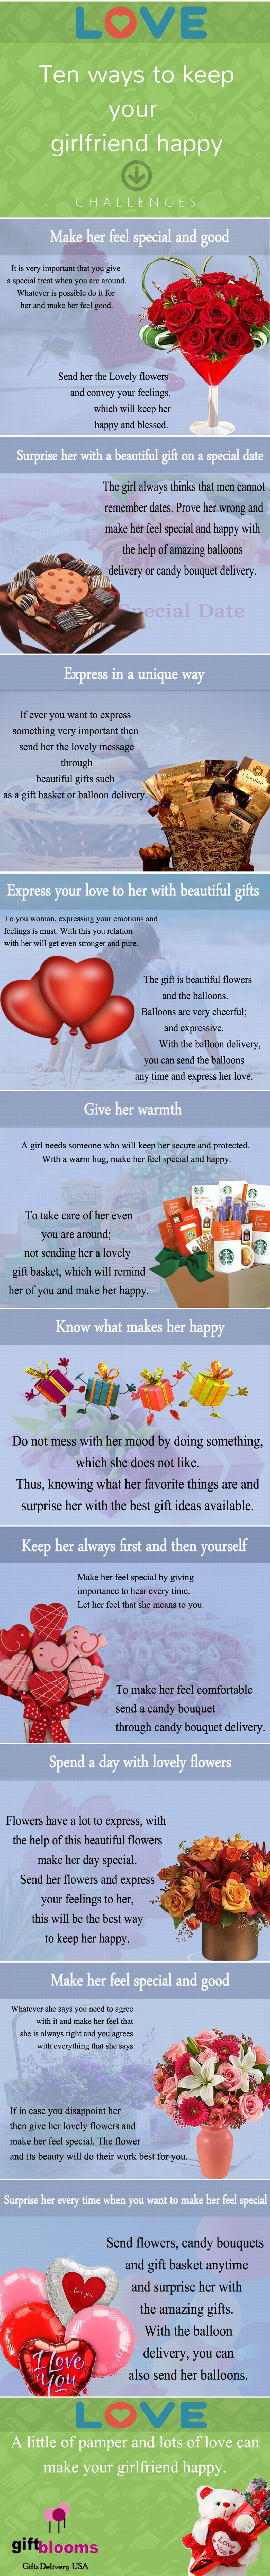 Ten Ways To Keep Your Girlfriend Happy Infographic